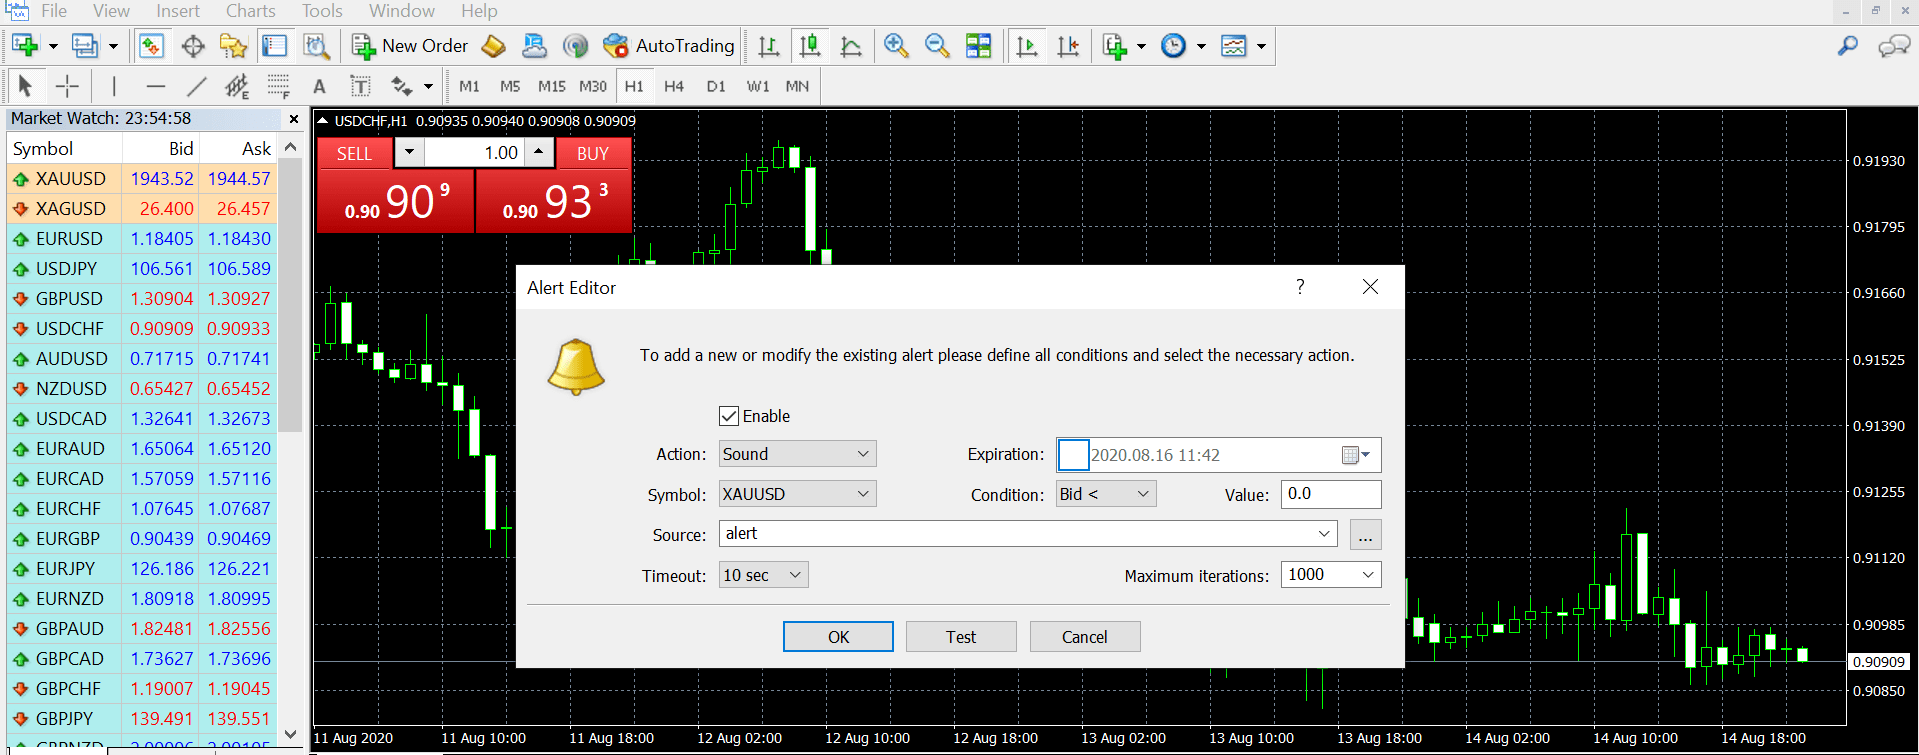 tradingplatforms-metatrader4-whatismt4-and-howtouseit-price-alert-image